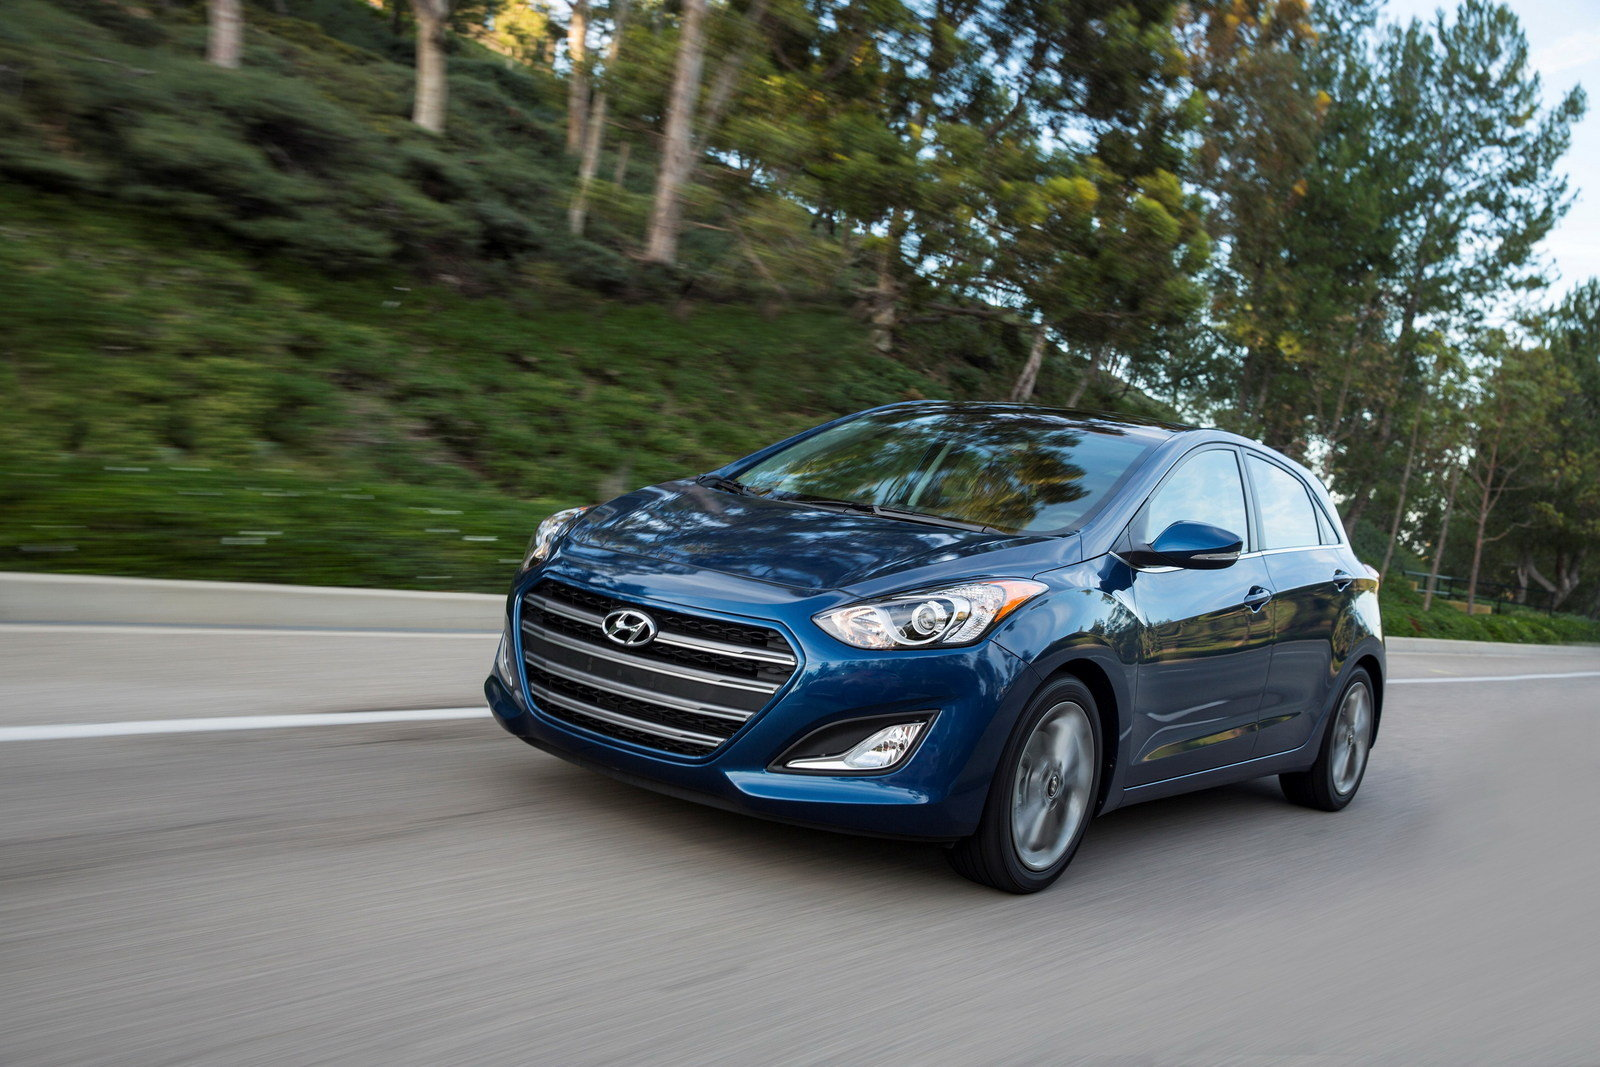 2016 hyundai elantra gt picture 617146 car review top speed. Black Bedroom Furniture Sets. Home Design Ideas